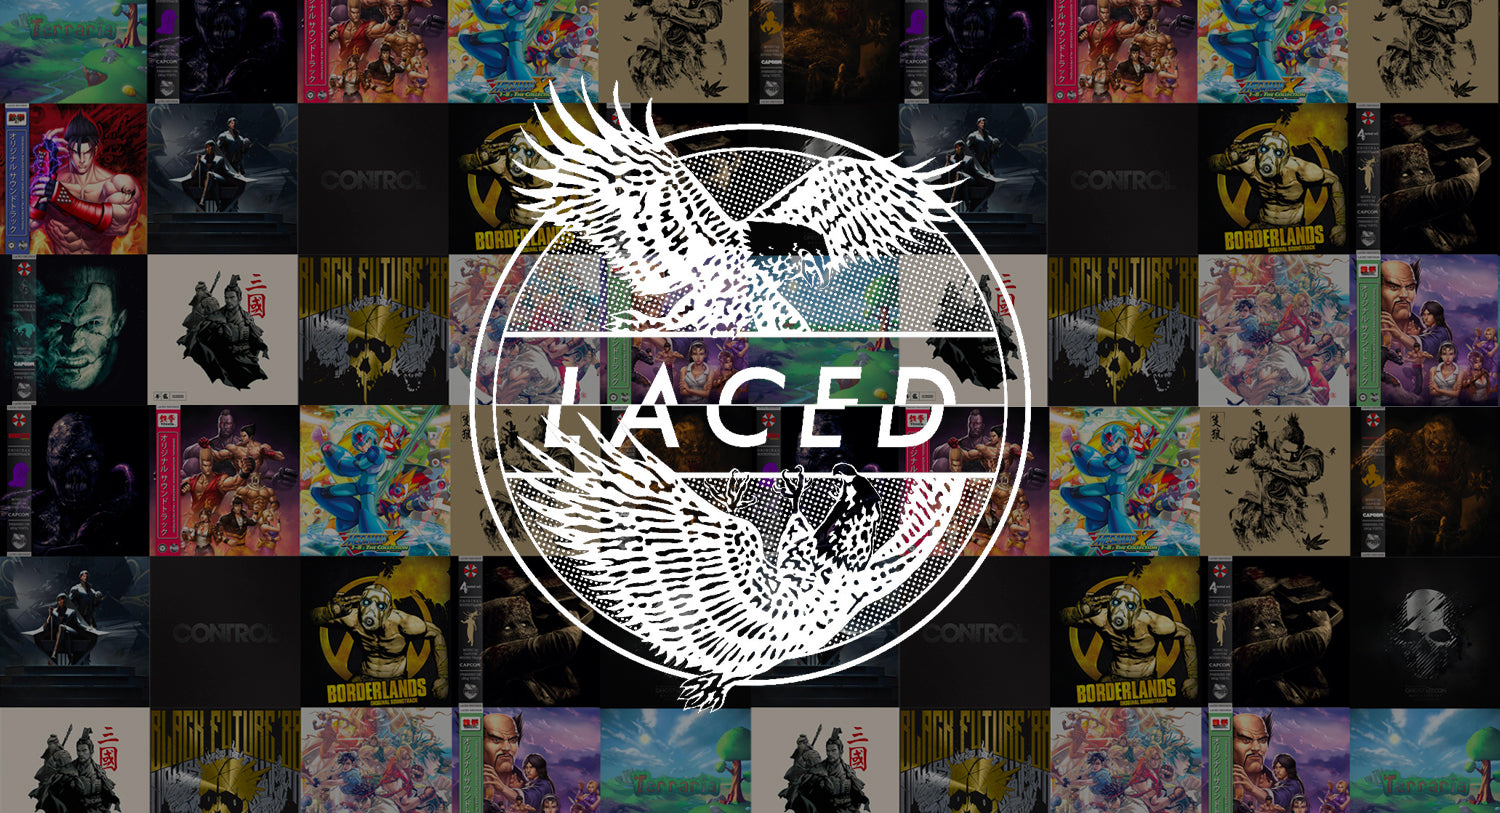 The old Laced Records logo, showing some eagles